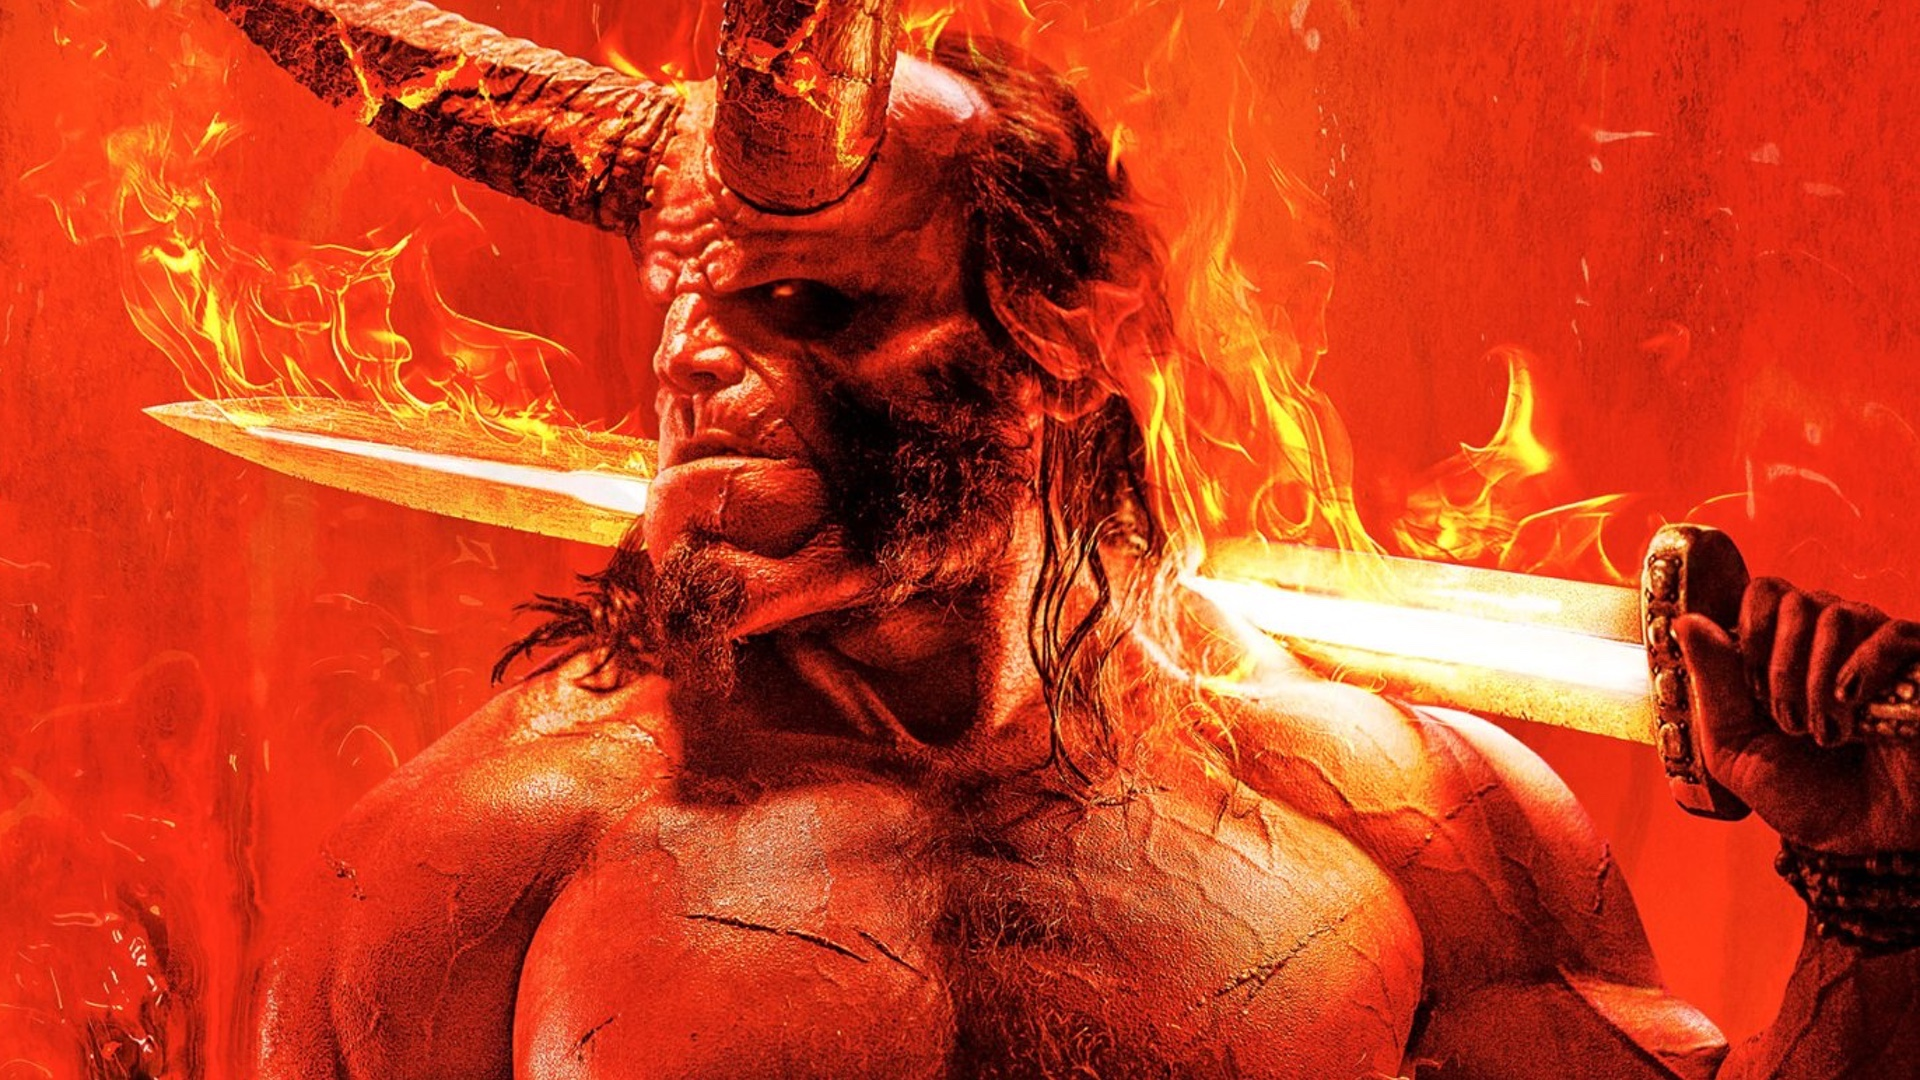 detailed-description-of-the-hellboy-reboot-footage-that-screened-at-nycc-social.jpg